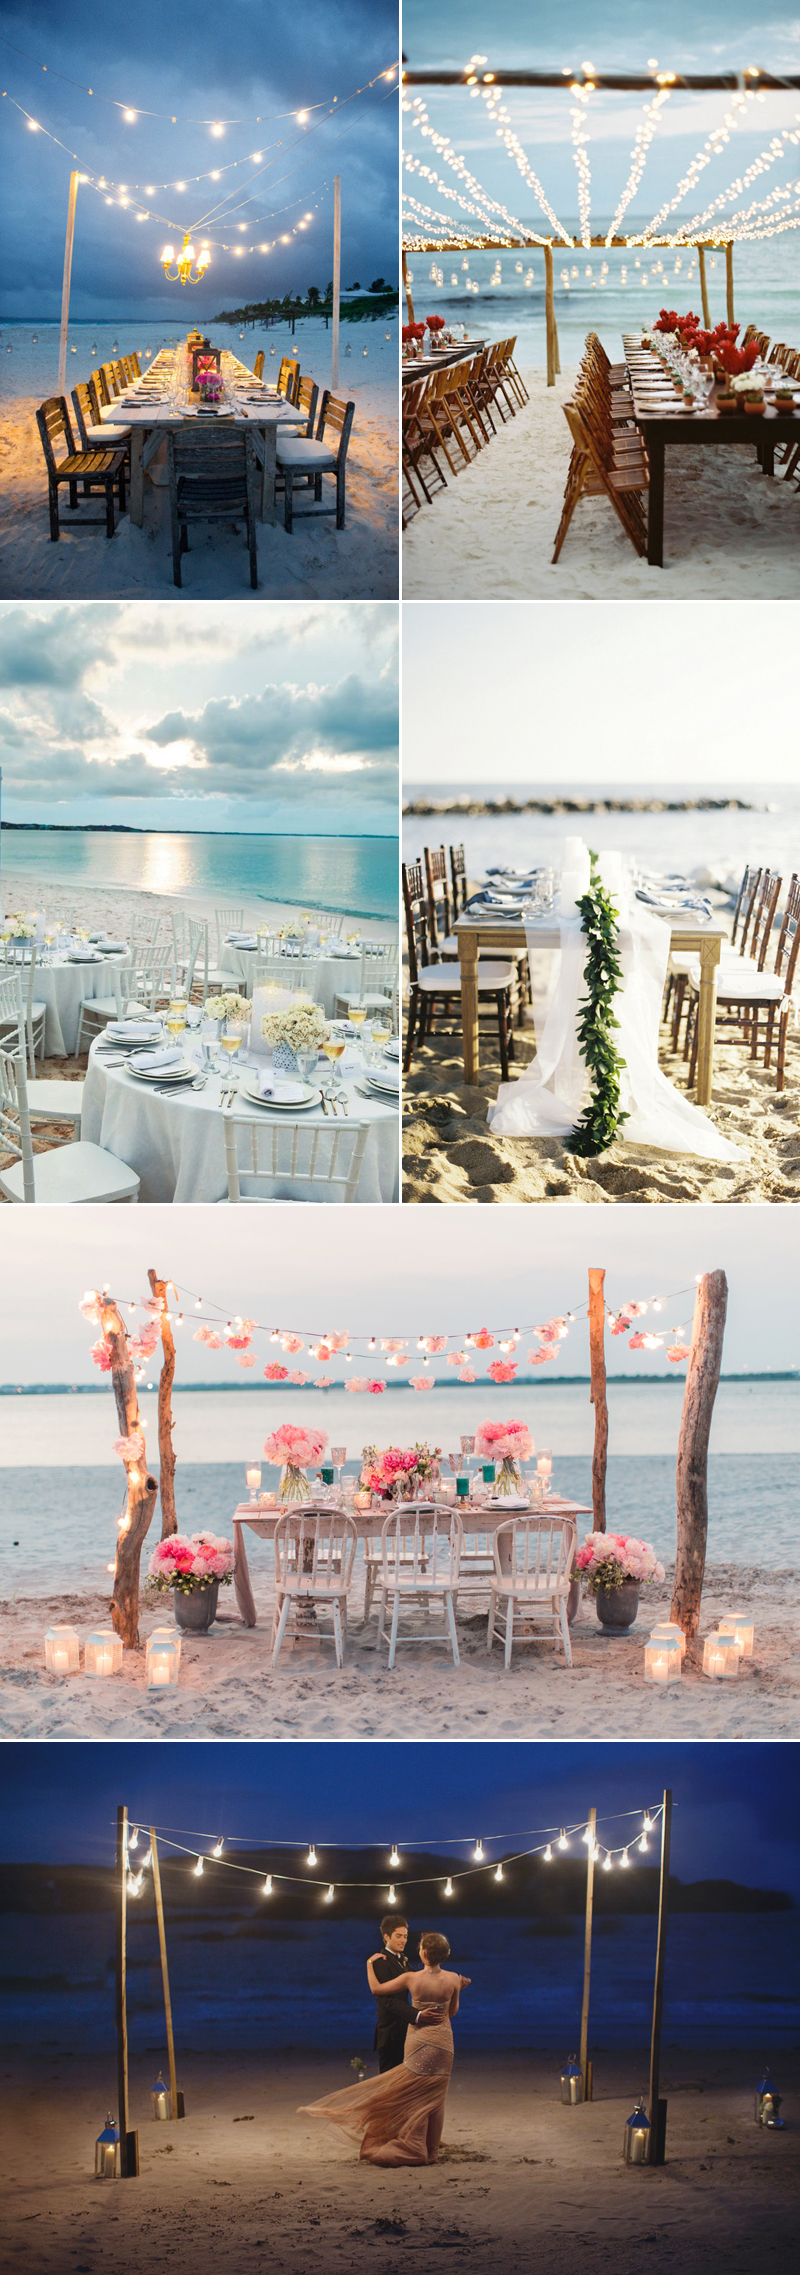 23 Romantic Beach Themed Wedding Ideas Praise Wedding